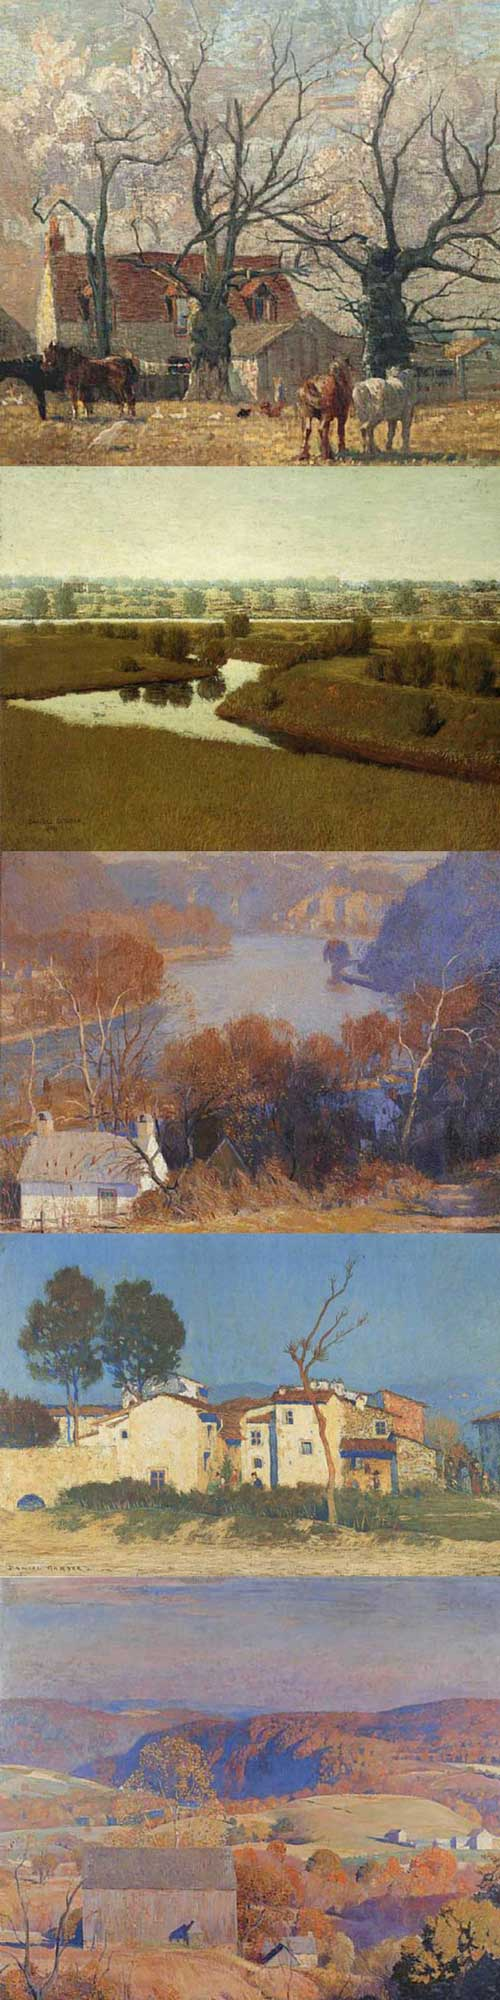 17 Stunning Paintings By Daniel Garber